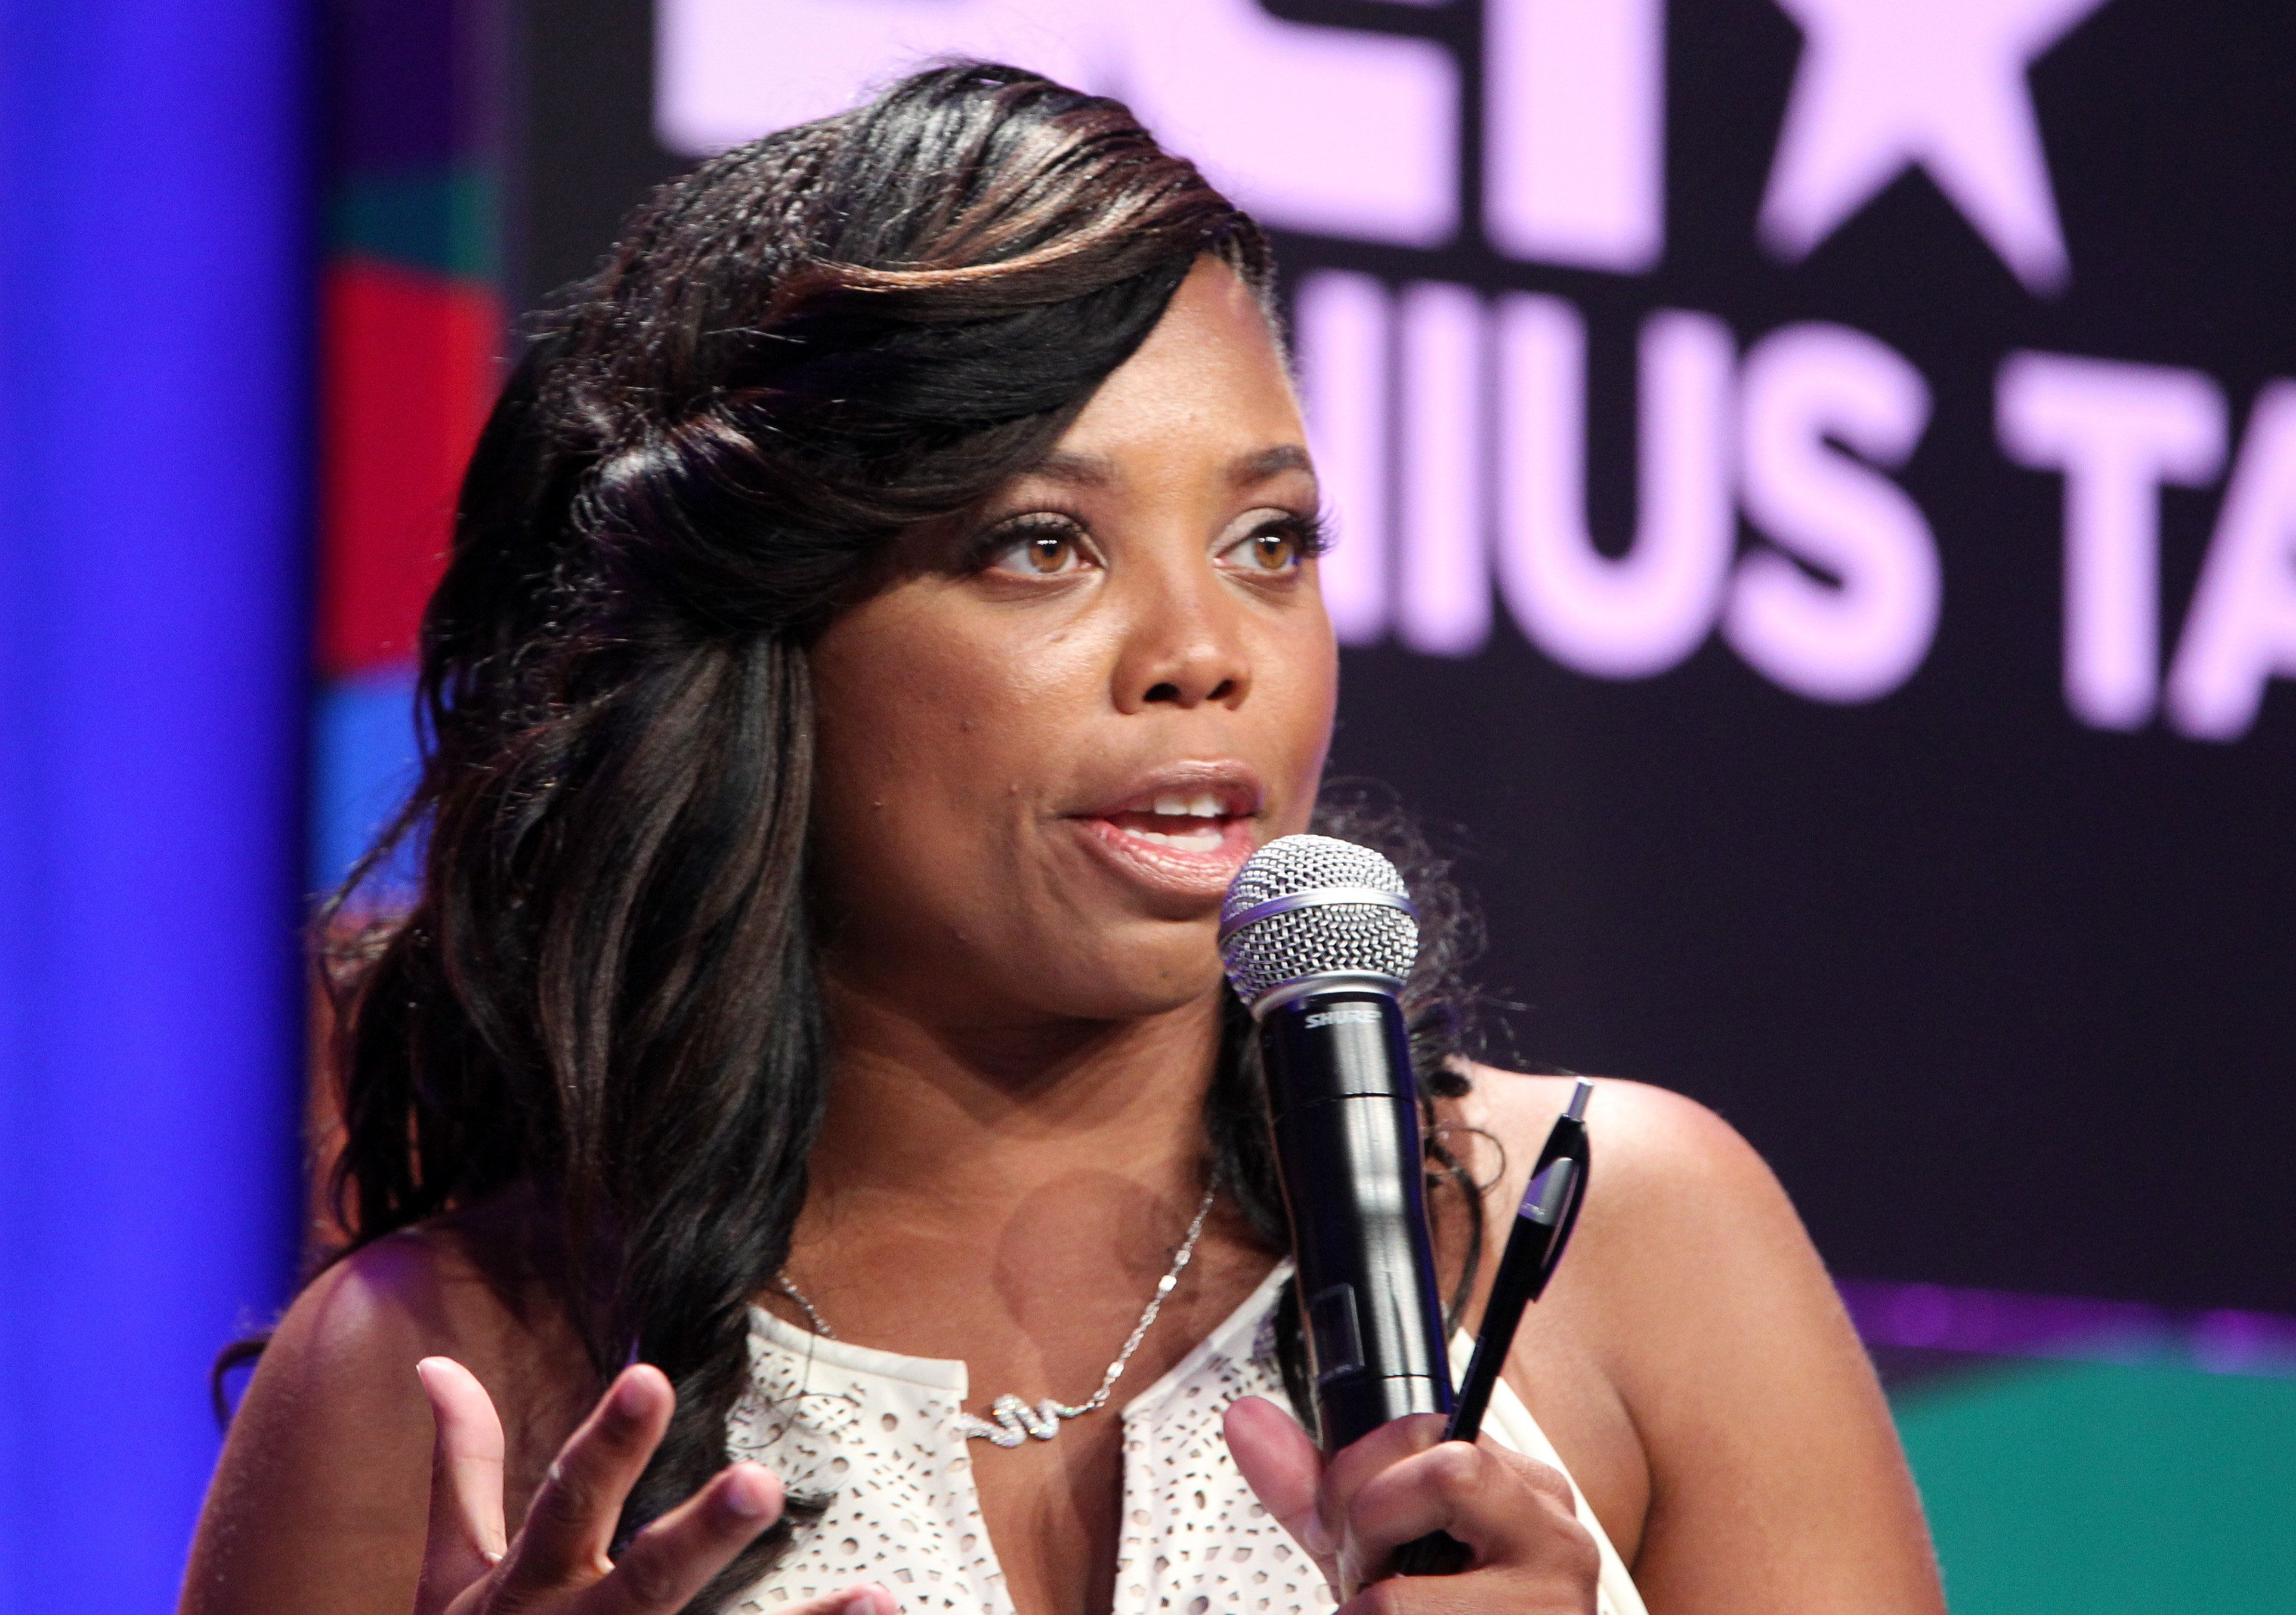 Jemele Hill the SportsCenter host on ESPN whose tweets last month calling President Trump a white supremacist caused the White House to call for her